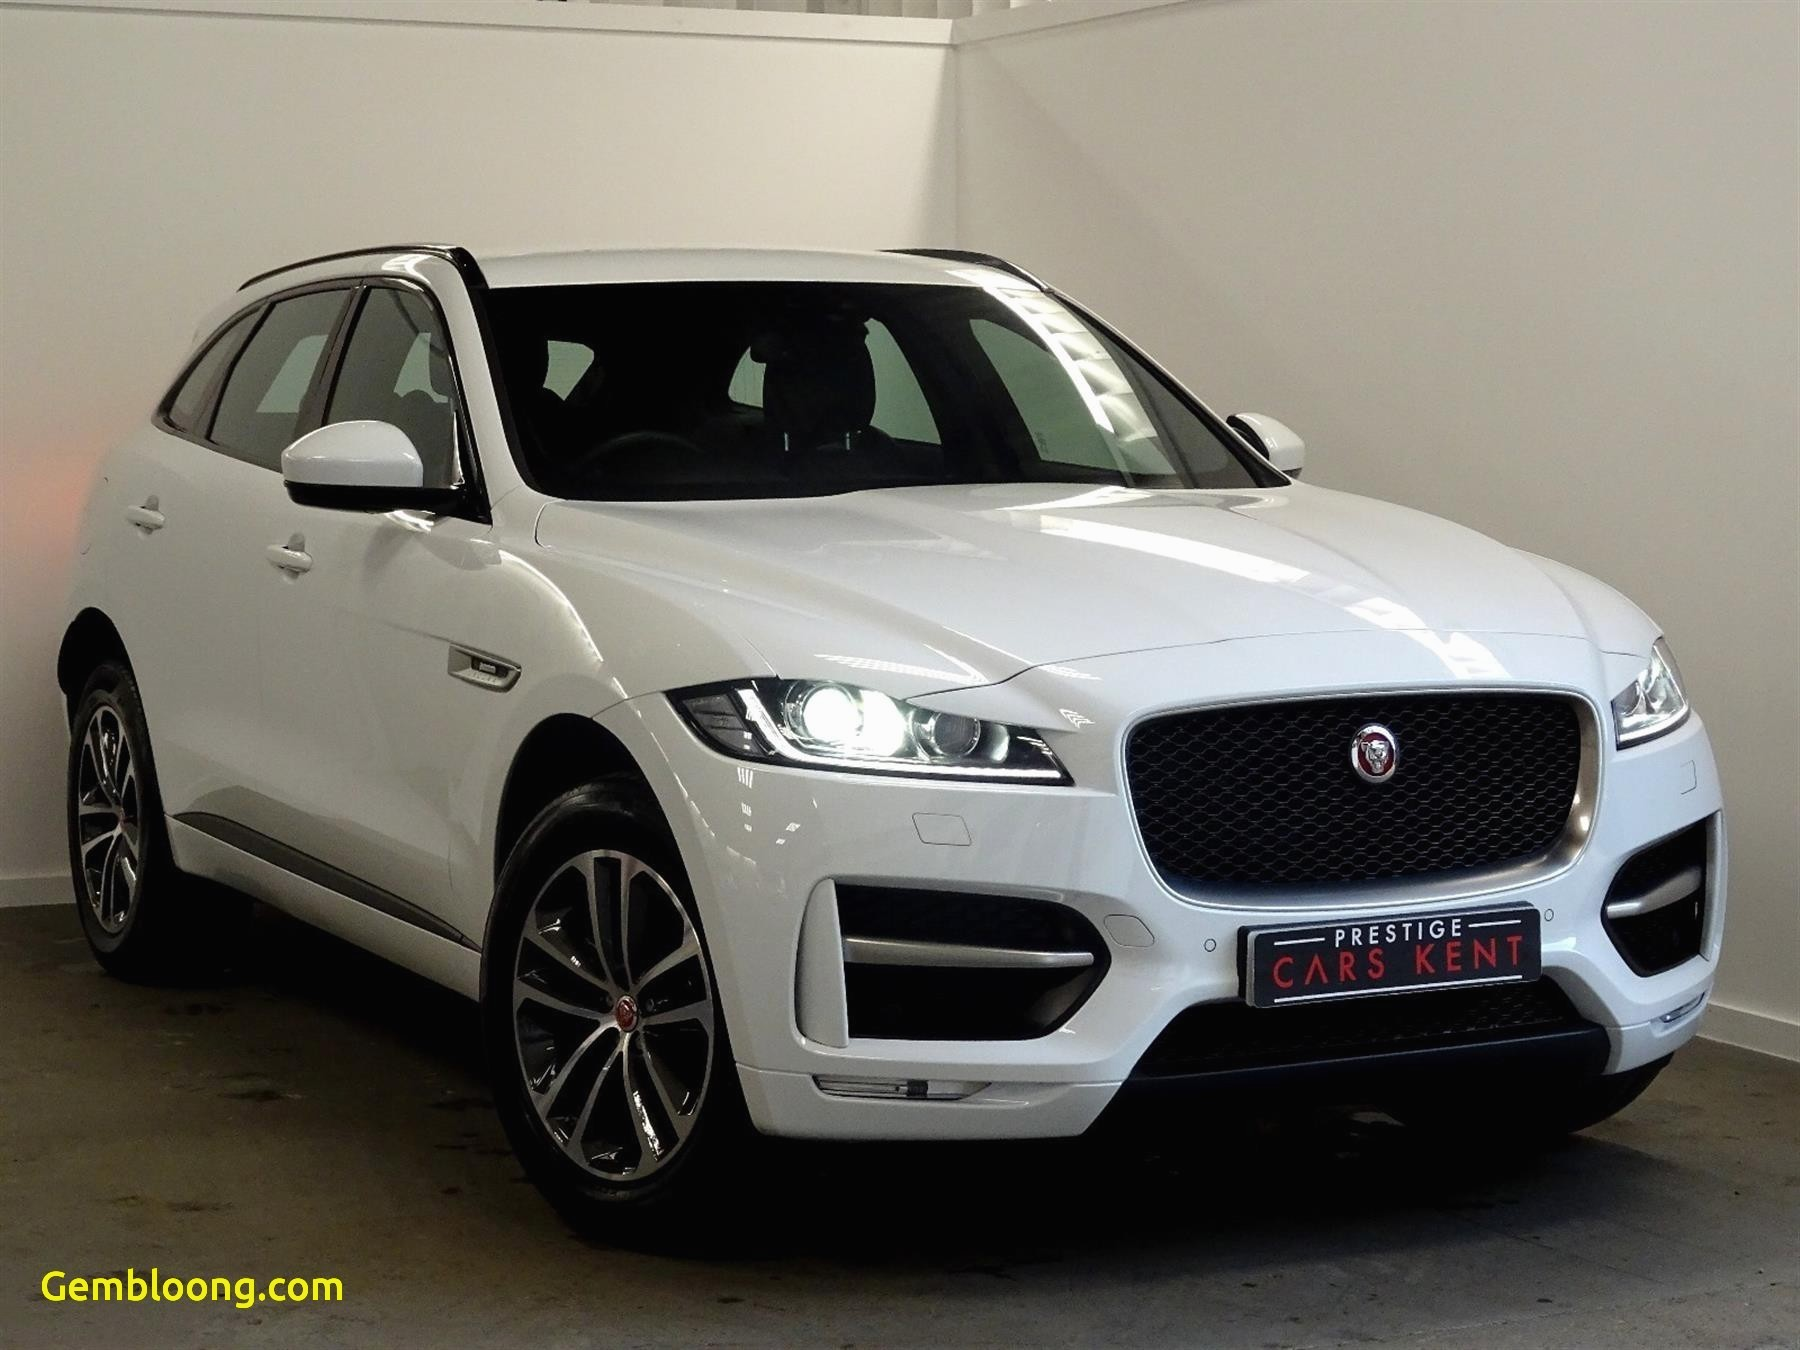 jaguar for sale best used cars near me cheap inspirational used 2017 jaguar f pace